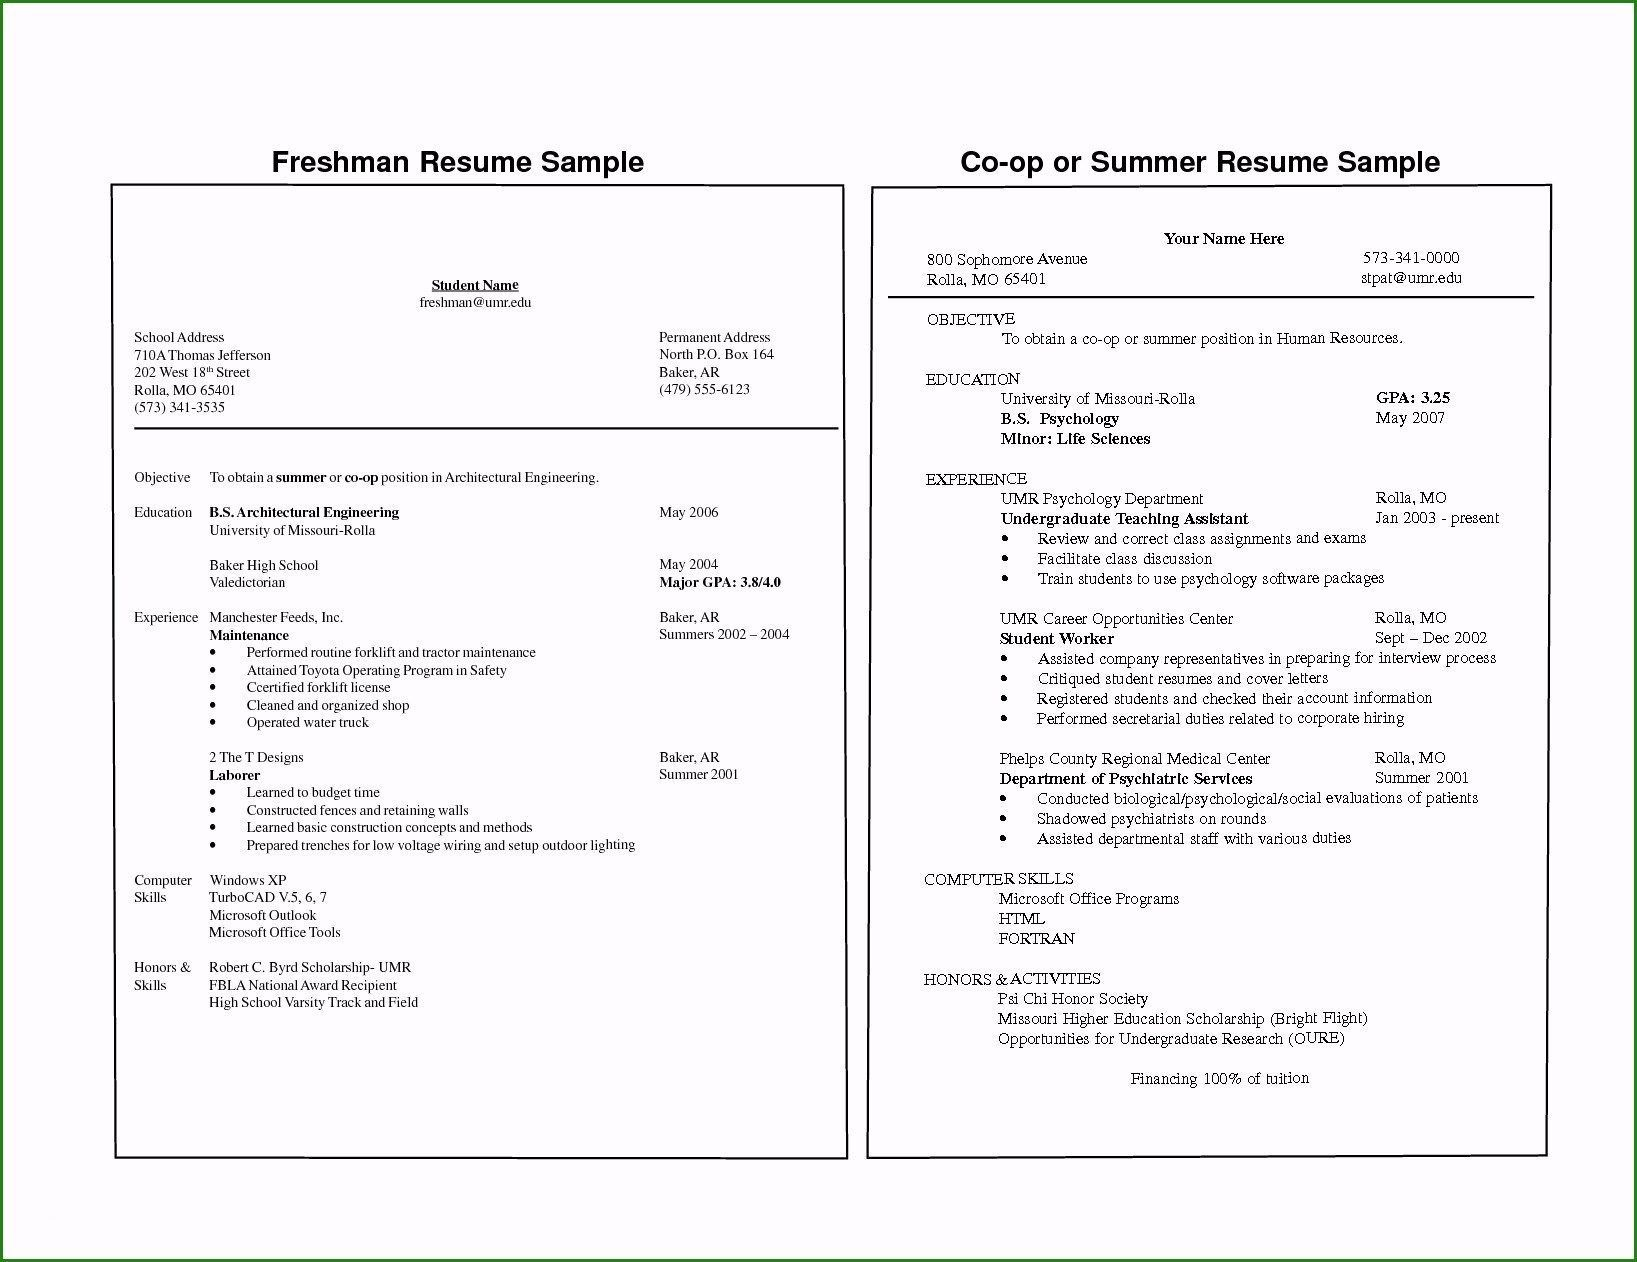 College resume template, how is to develop it well? Just